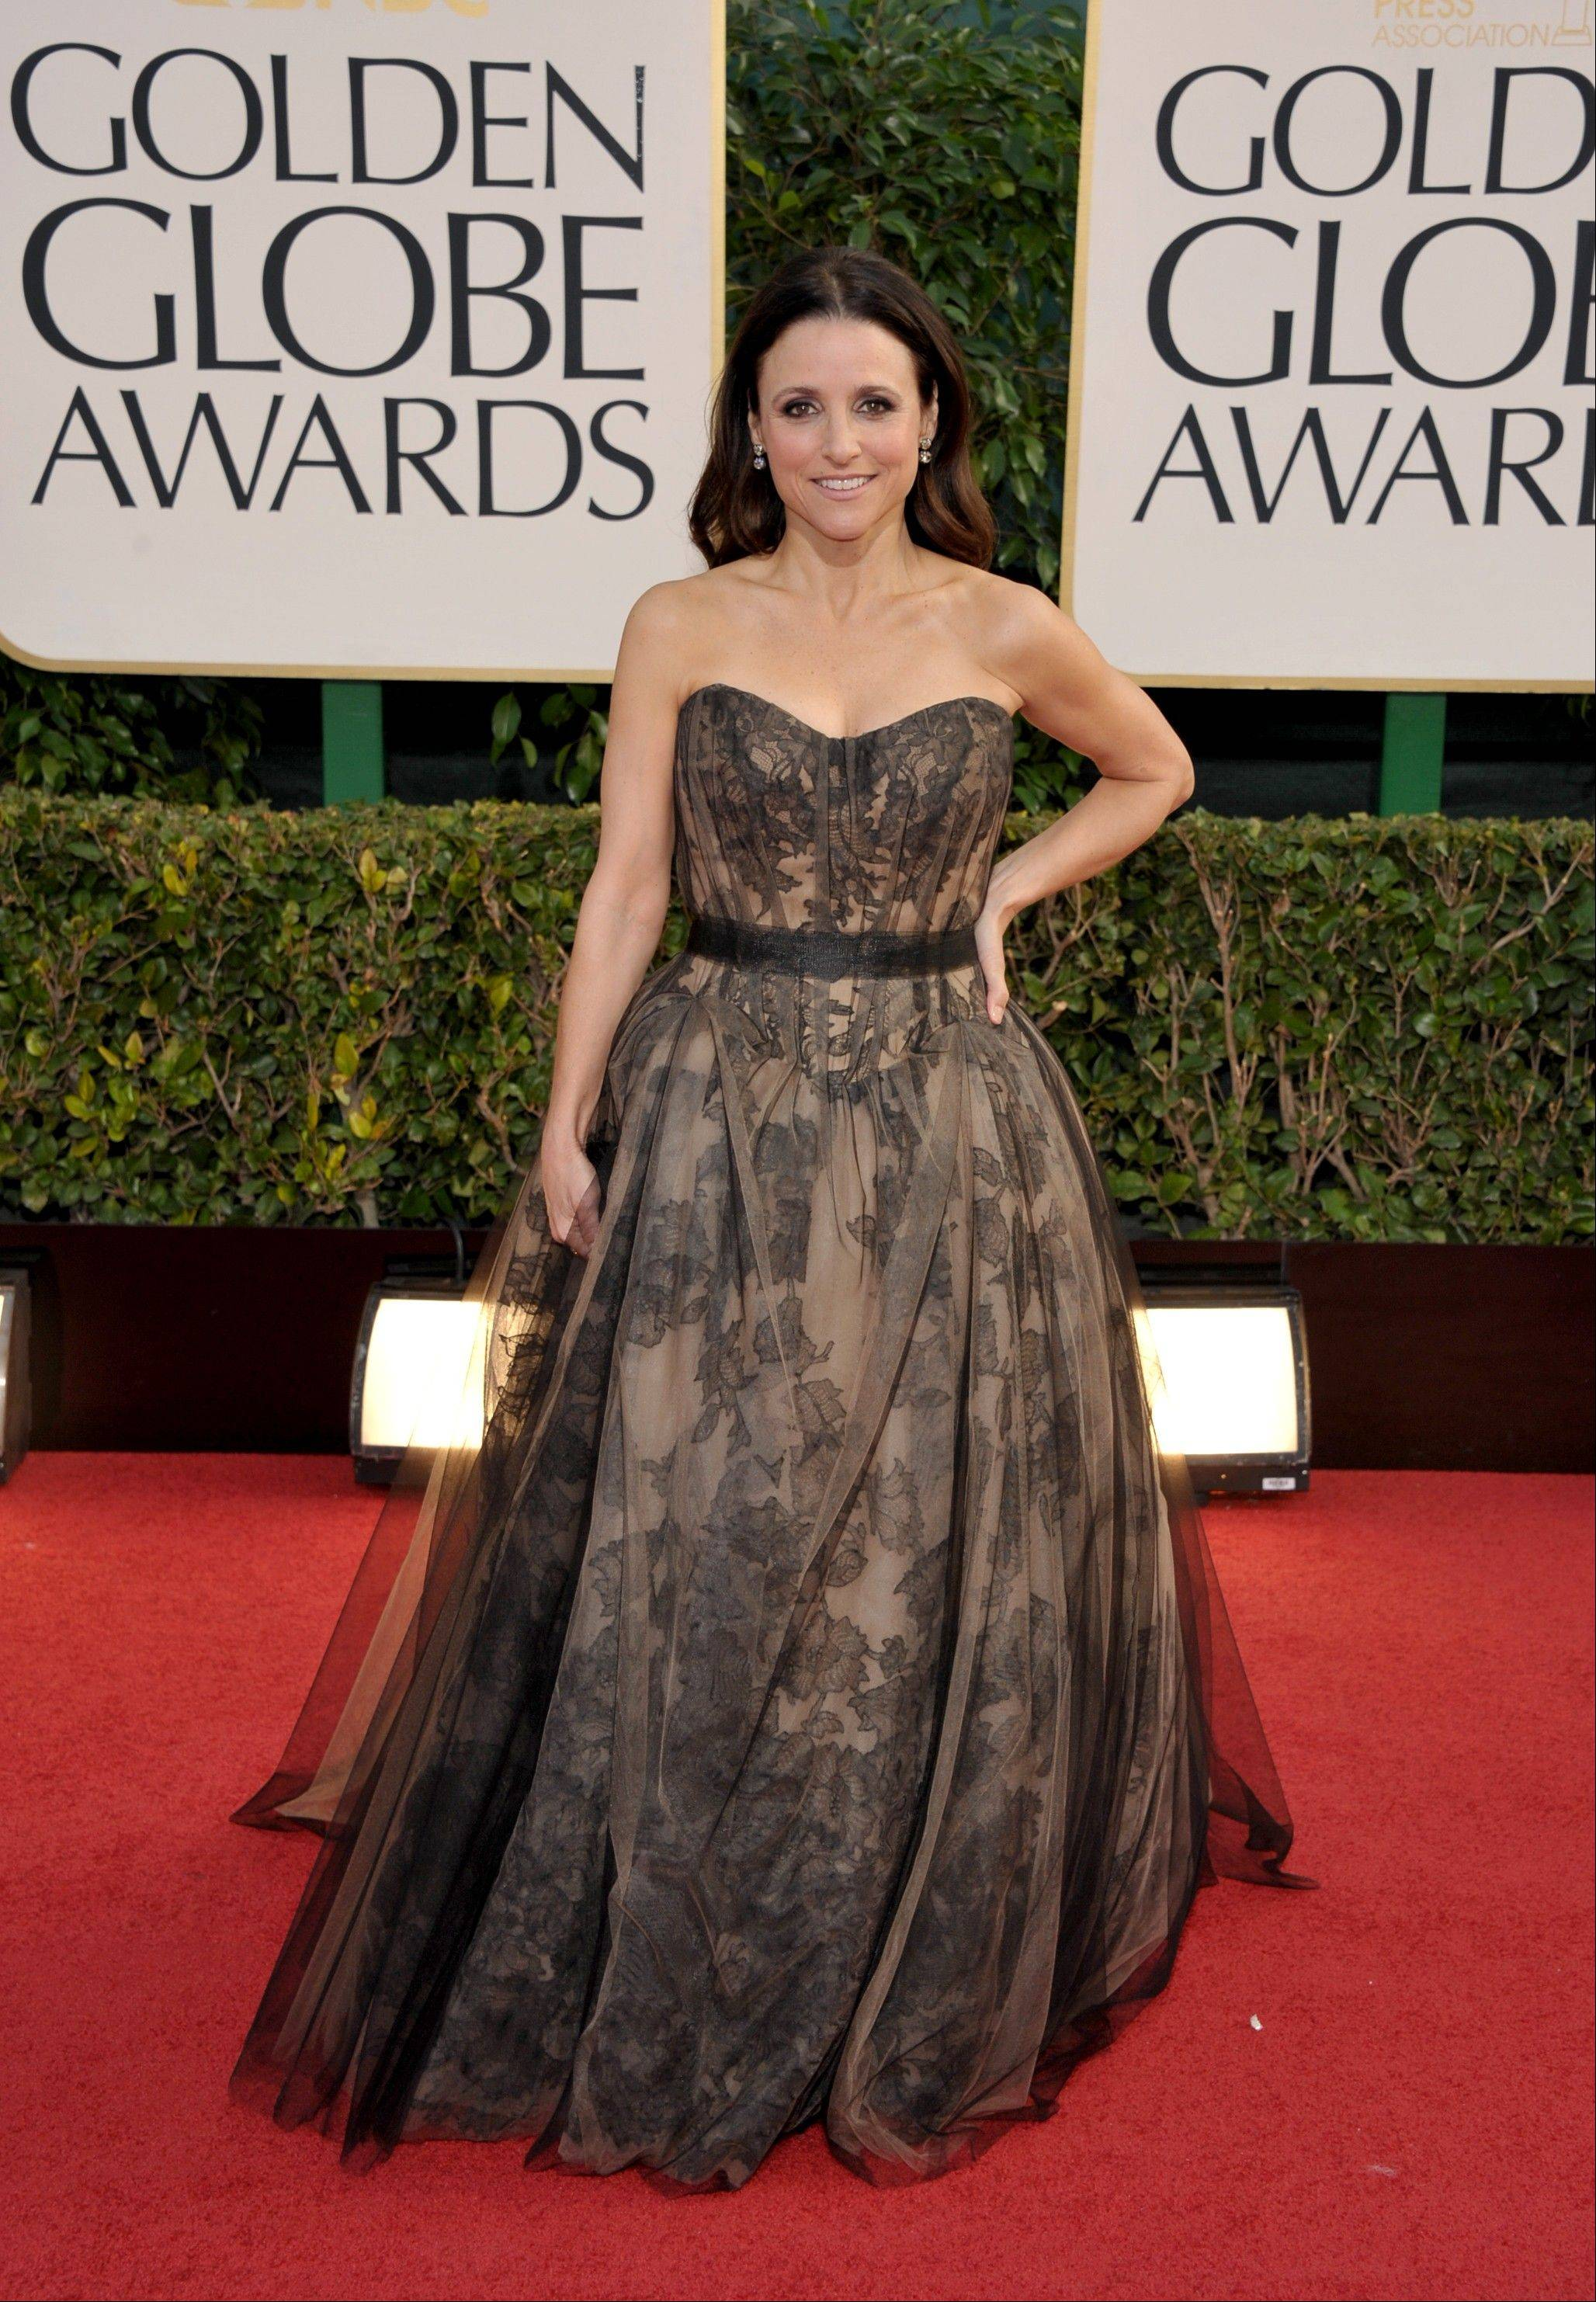 Julia Louis-Dreyfus arrives at the 70th Annual Golden Globe Awards at the Beverly Hilton Hotel on Sunday Jan. 13, 2013, in Beverly Hills, Calif.